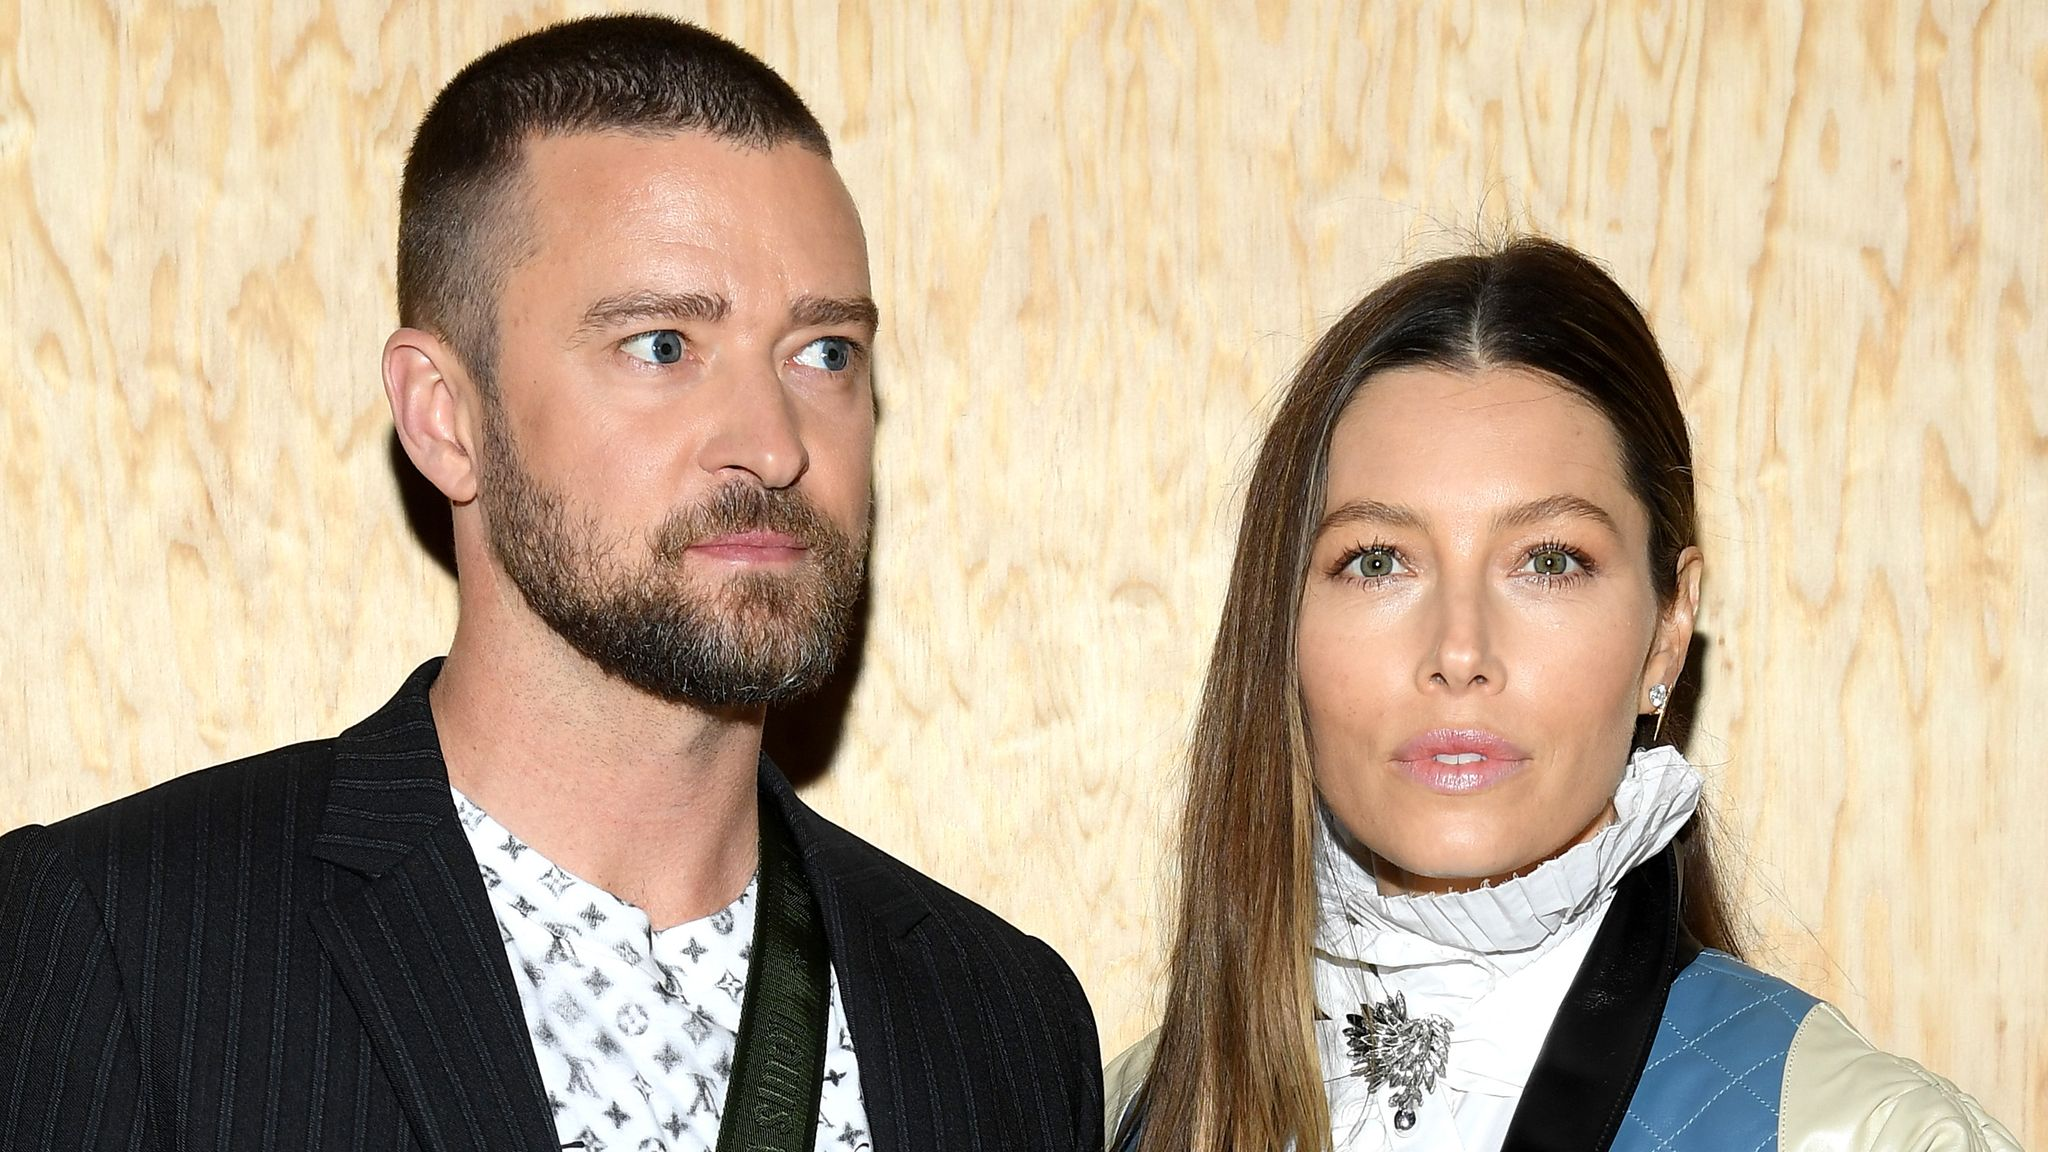 Justin Timberlake apologises to wife Jessica Biel for 'strong lapse in judgement'